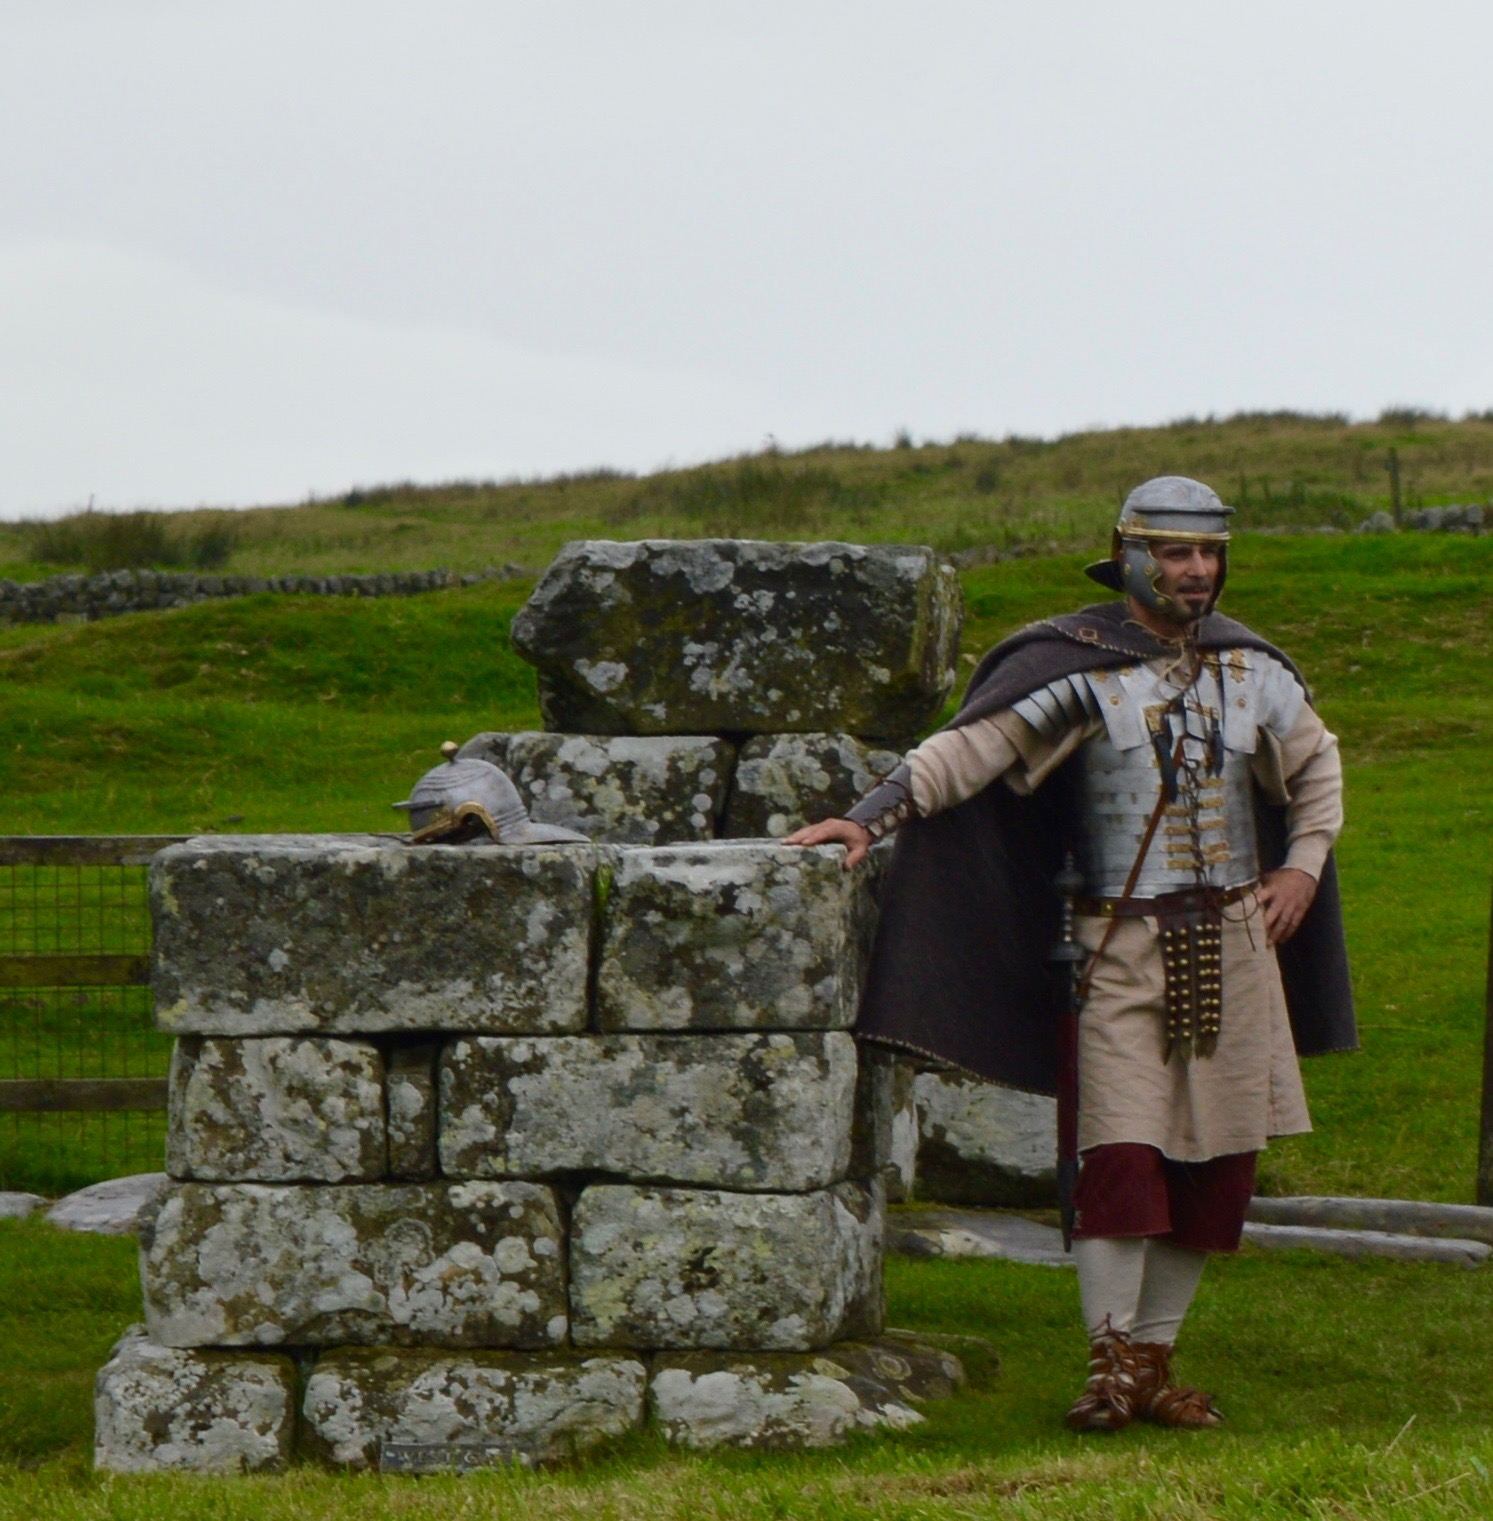 Hadrian's Wall Live 2016 | Birdoswald Roman Fort & Housesteads - A Review - housesteads night patrol